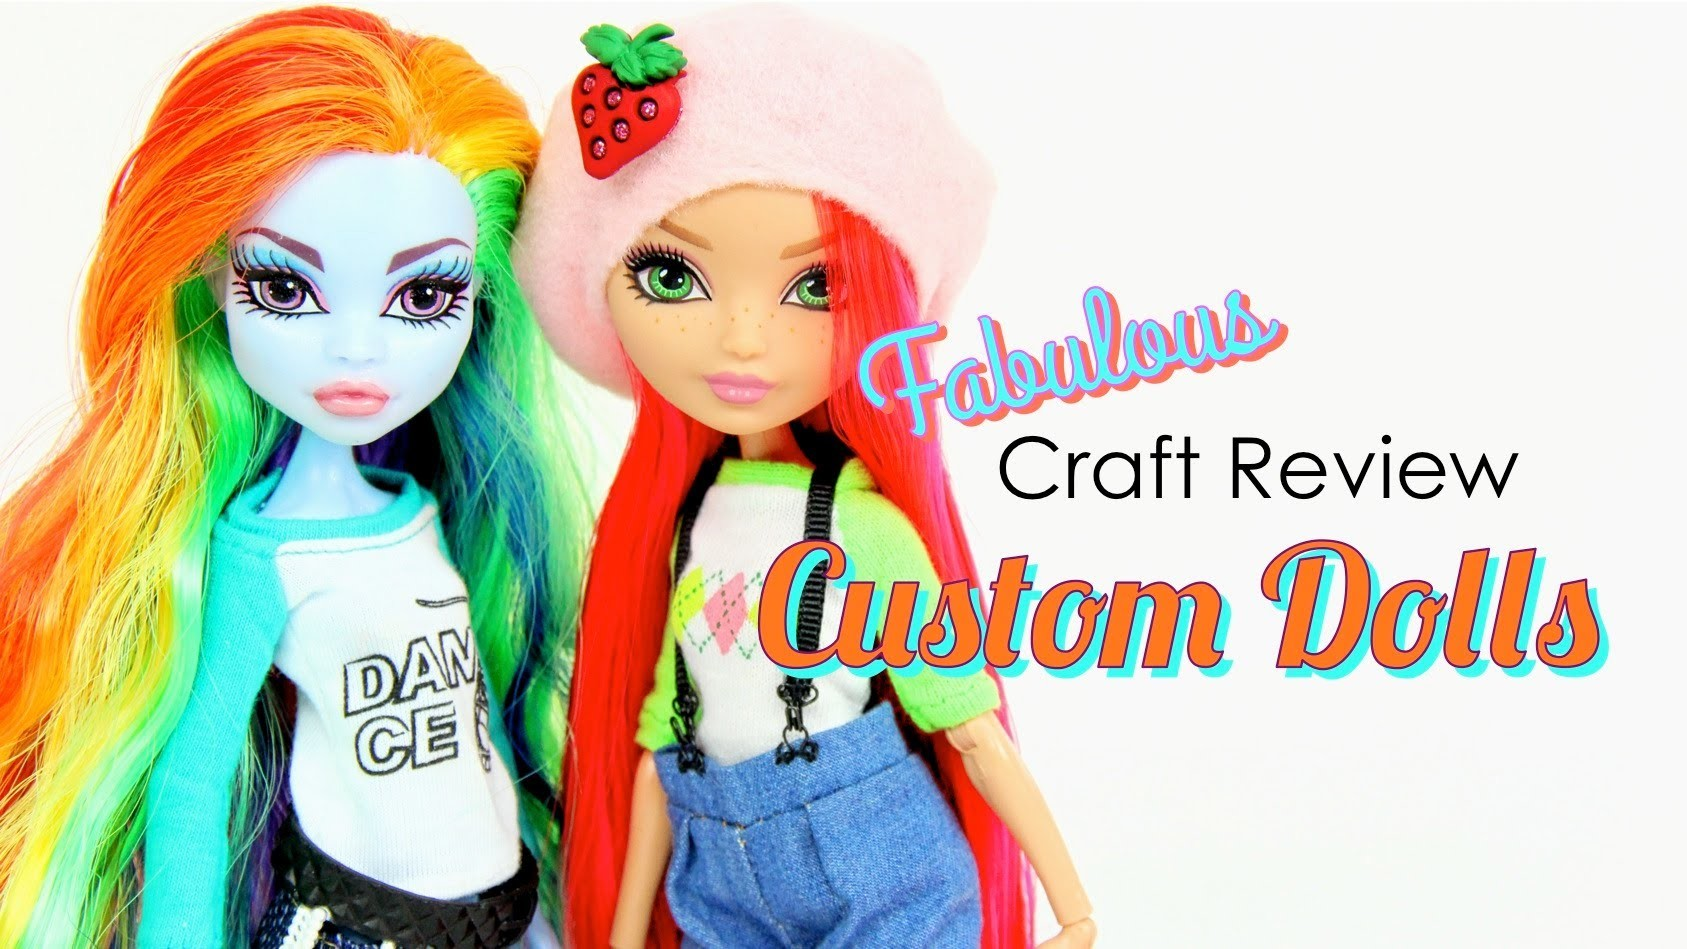 Fabulous Craft Review: Custom Dolls